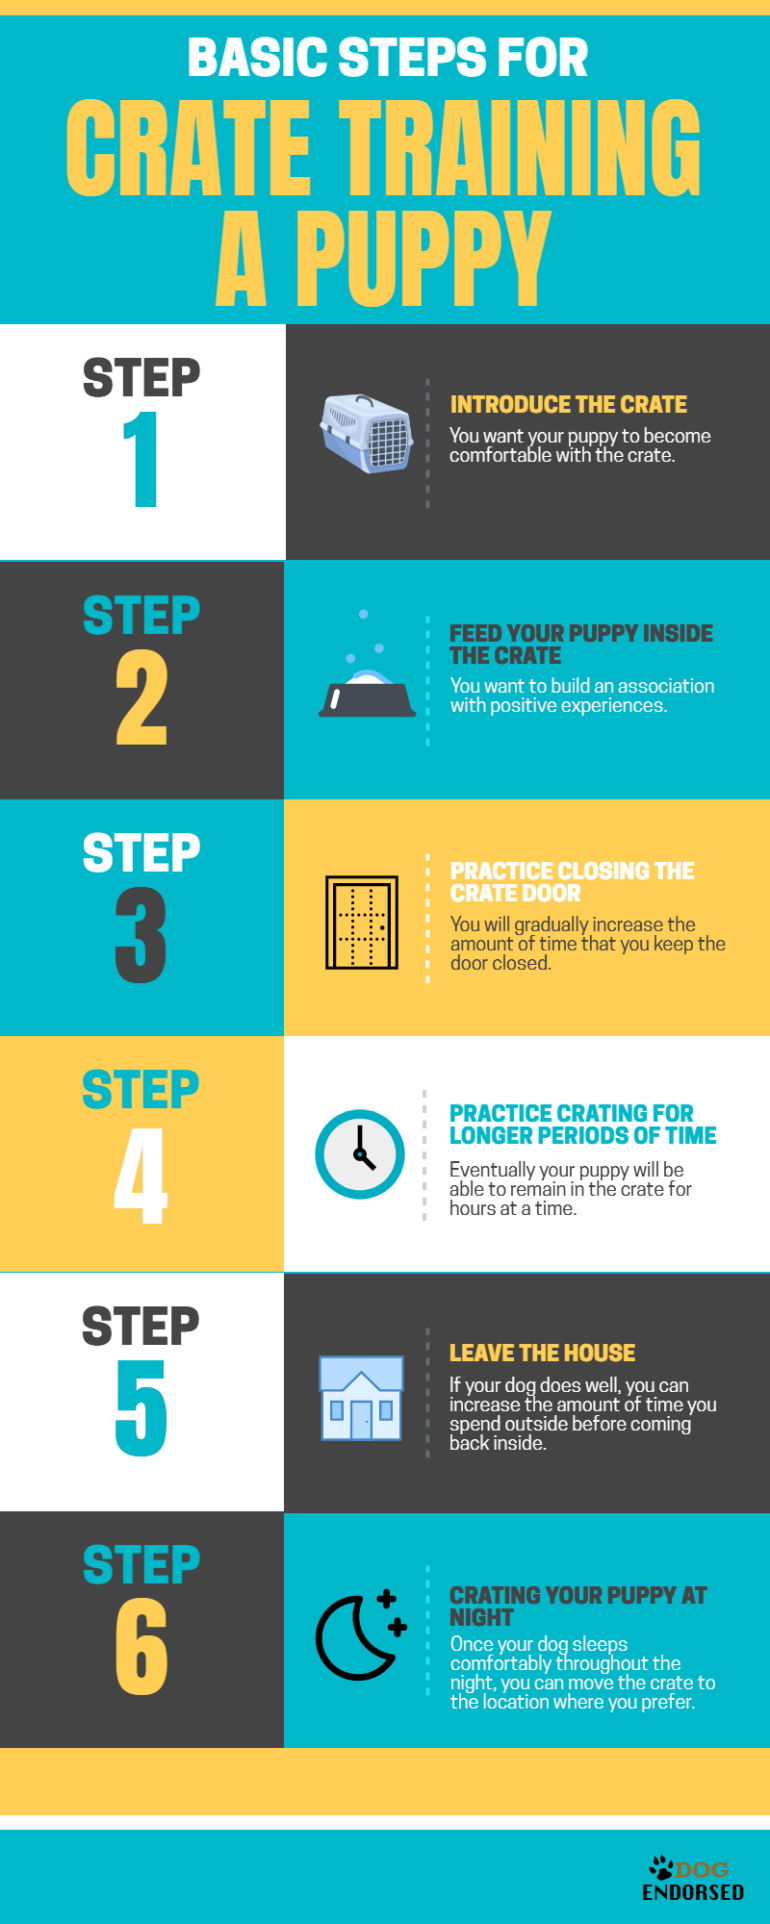 Basic Steps for Crate Training a Puppy